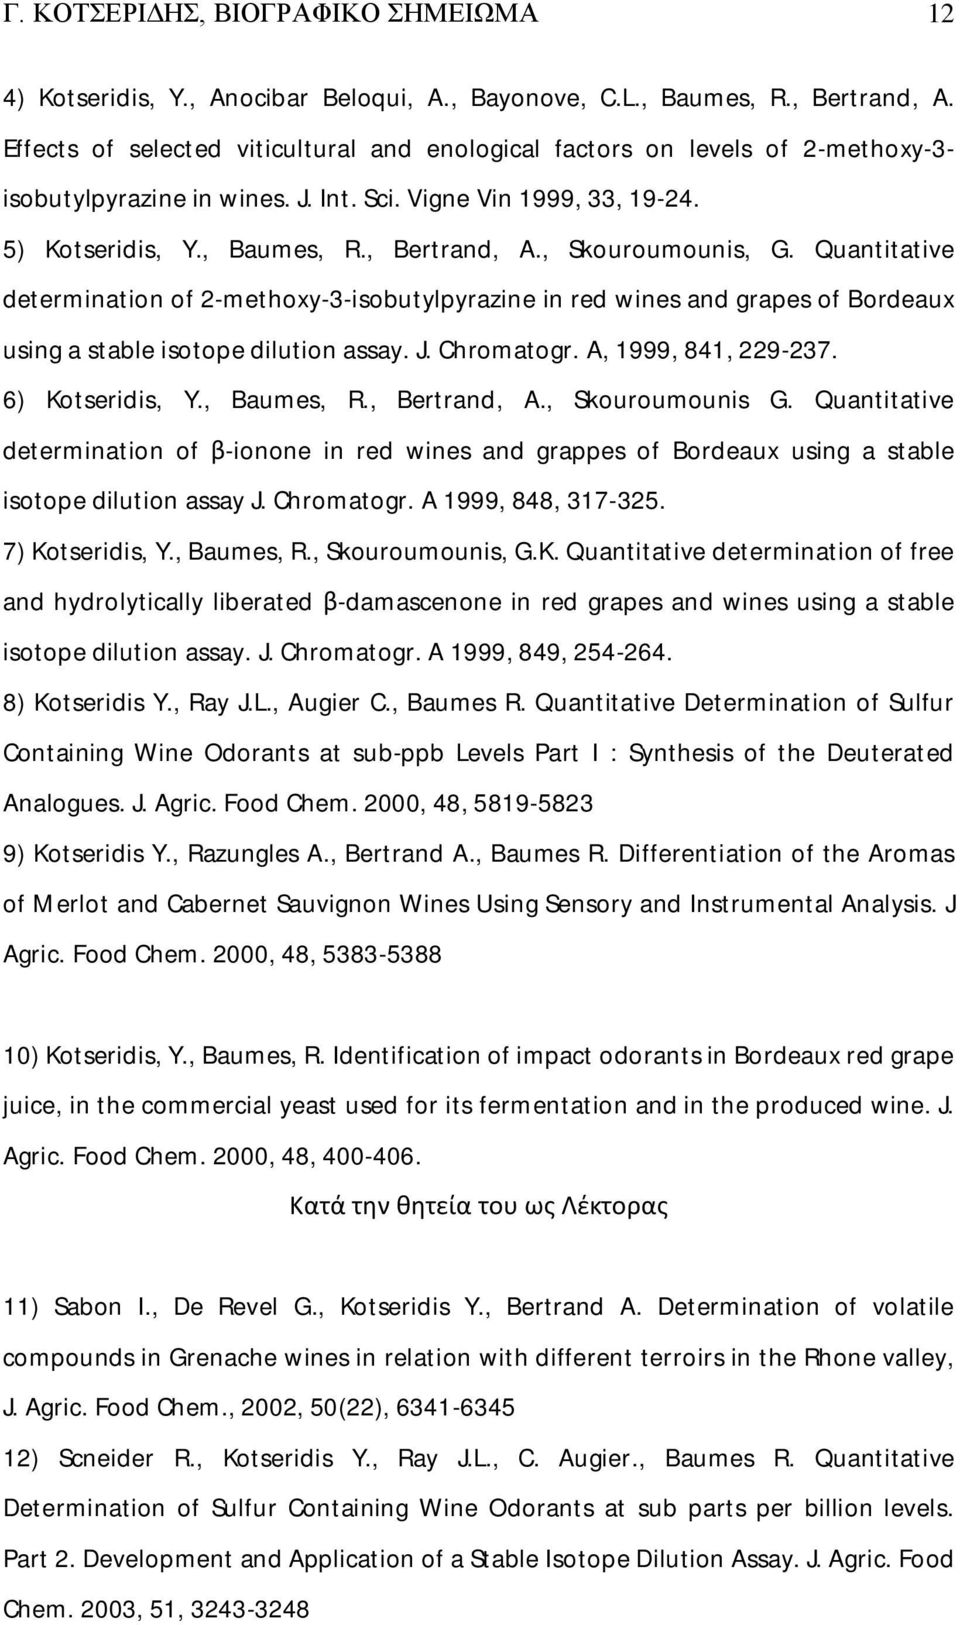 , Skouroumounis, G. Quantitative determination of 2-methoxy-3-isobutylpyrazine in red wines and grapes of Bordeaux using a stable isotope dilution assay. J. Chromatogr. A, 1999, 841, 229-237.